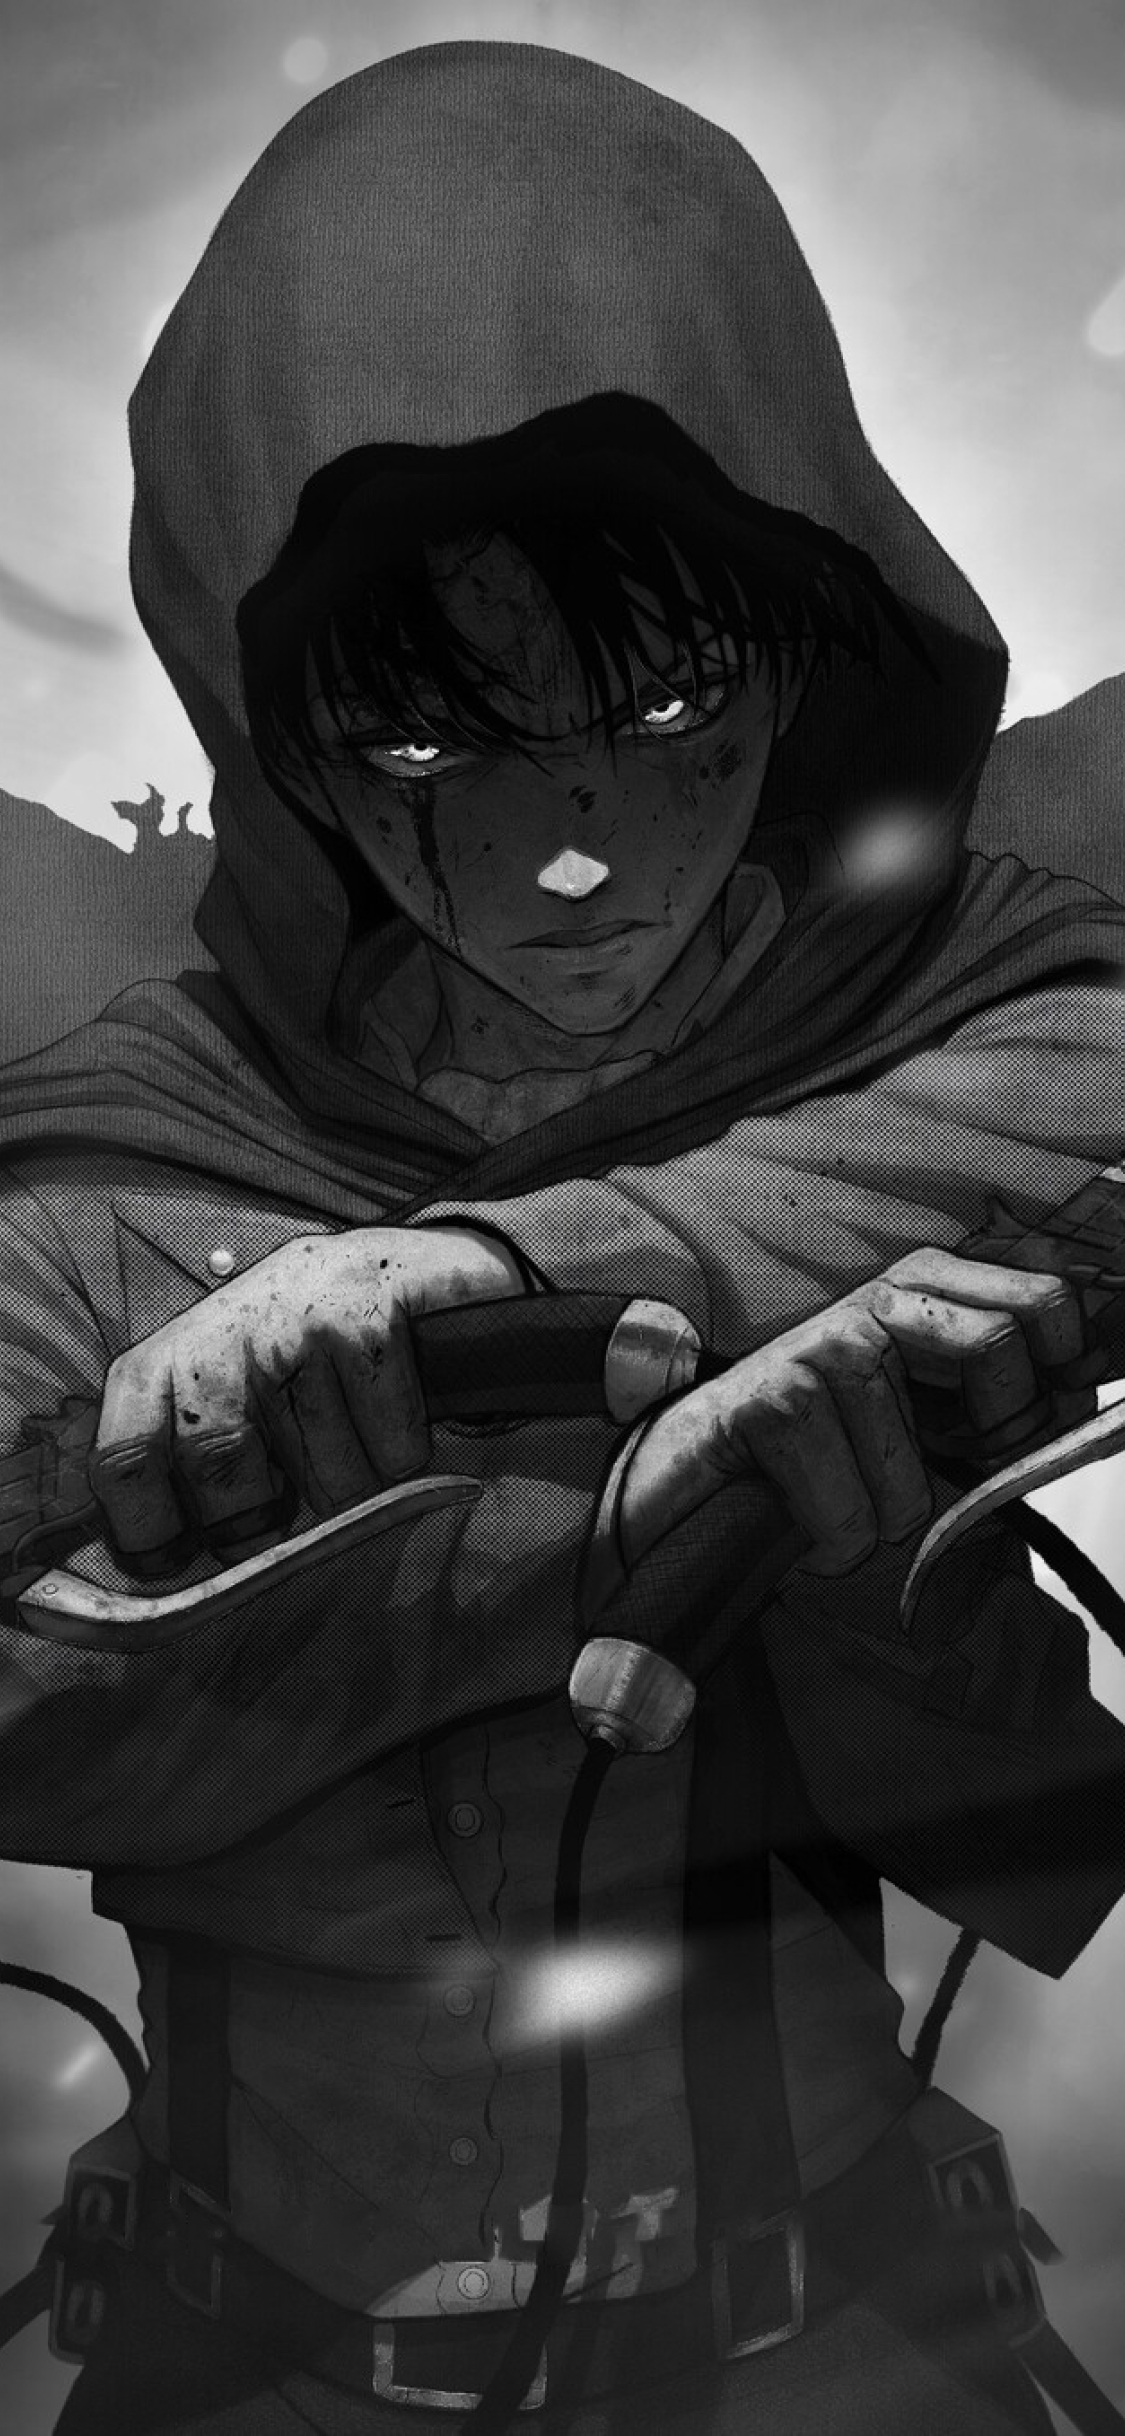 1125x2436 Levi Ackerman Monochrome Iphone Xs Iphone 10 Iphone X Wallpaper Hd Anime 4k Wallpapers Images Photos And Background